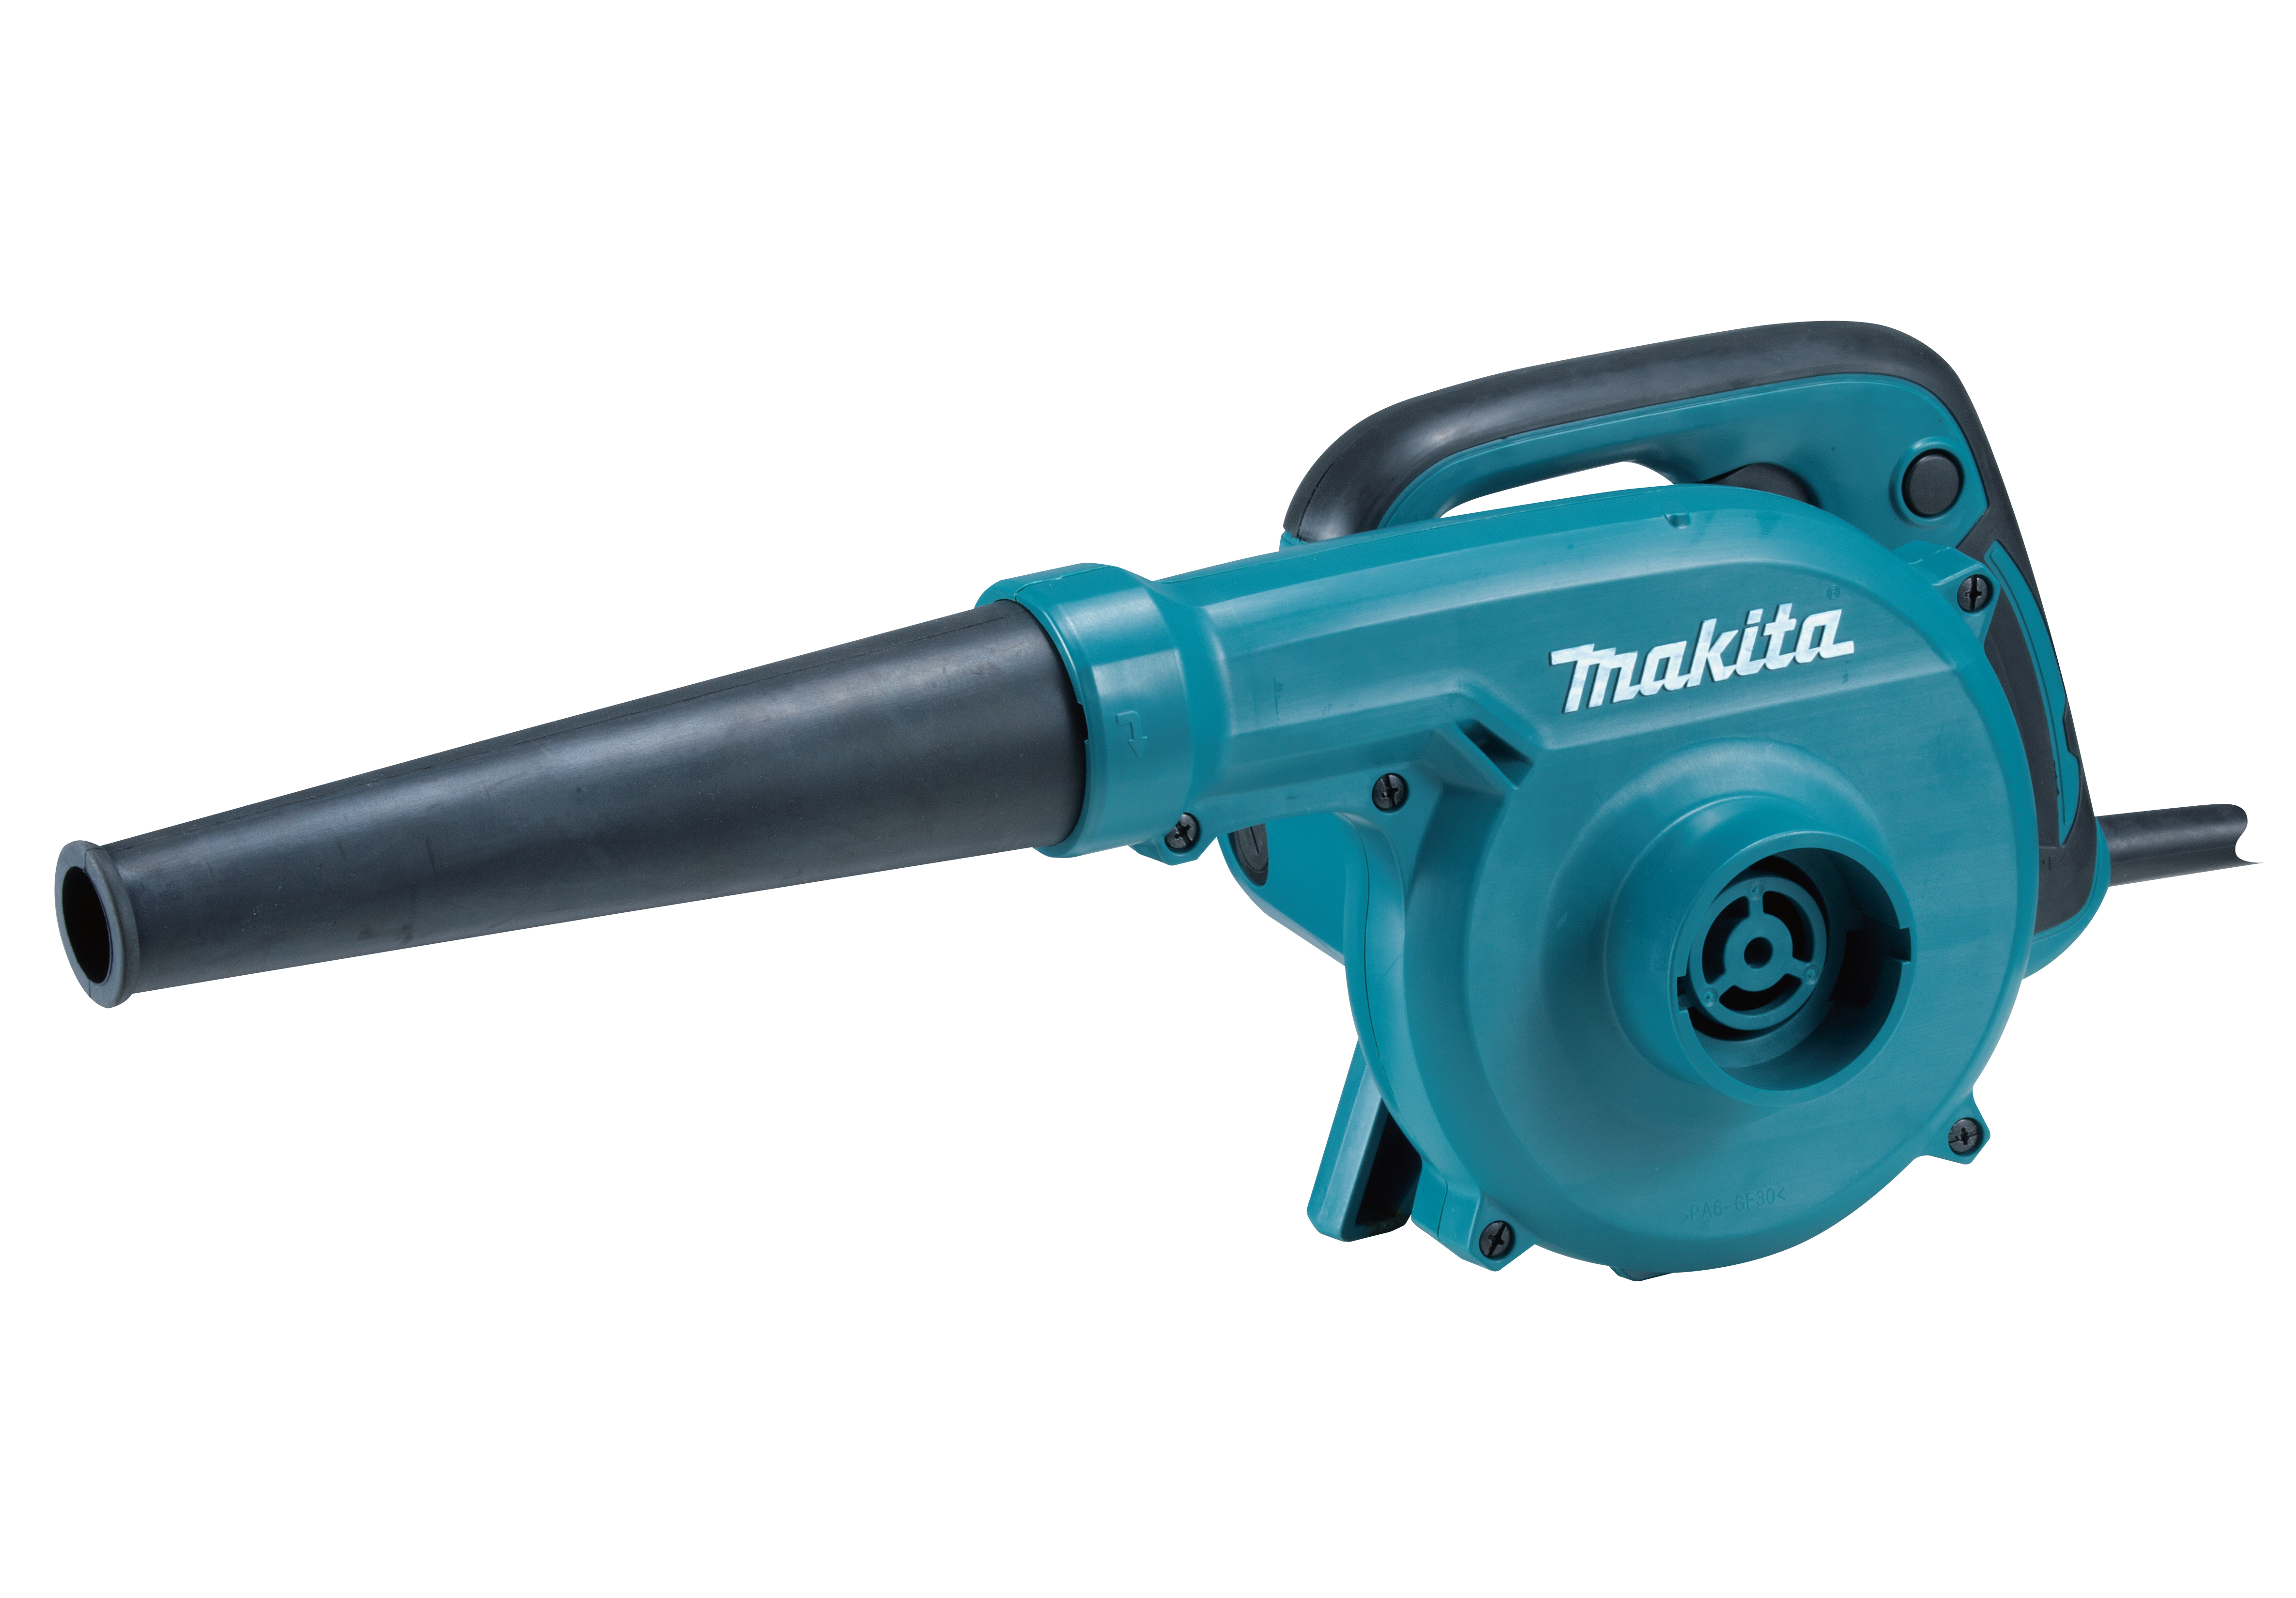 Air Blower Face : Makita power tools south africa blowers ub and